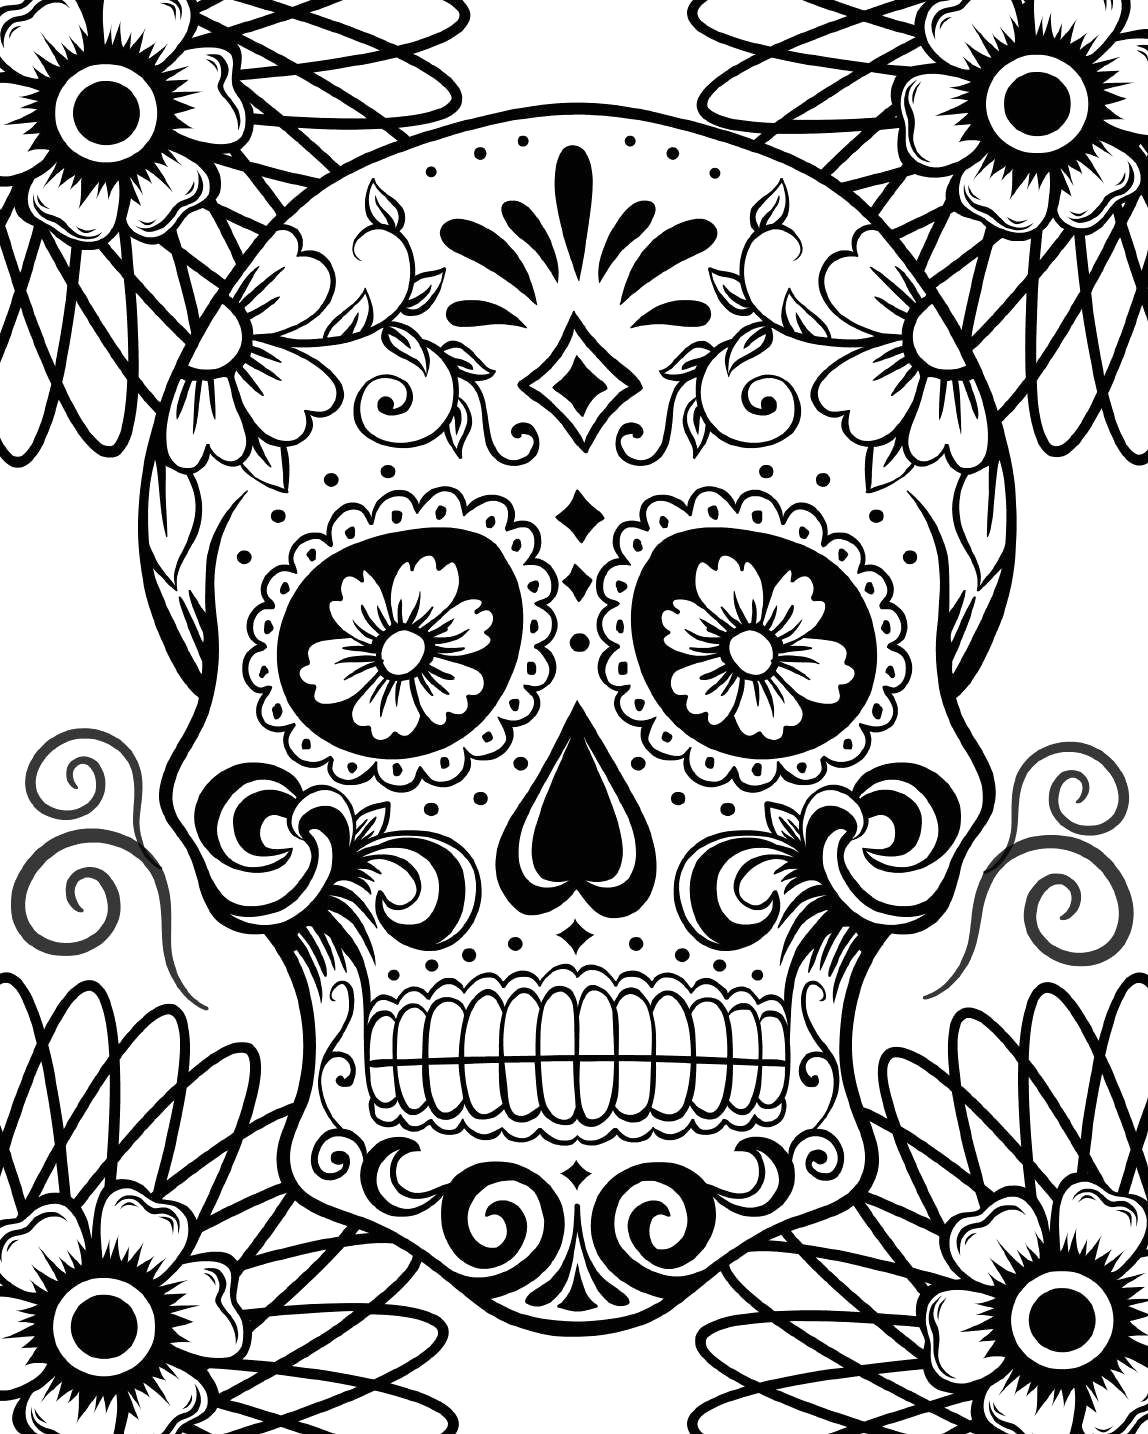 Free Printable Day Of the Dead Coloring Pages for Adults Free Printable Day Of the Dead Coloring Pages Best